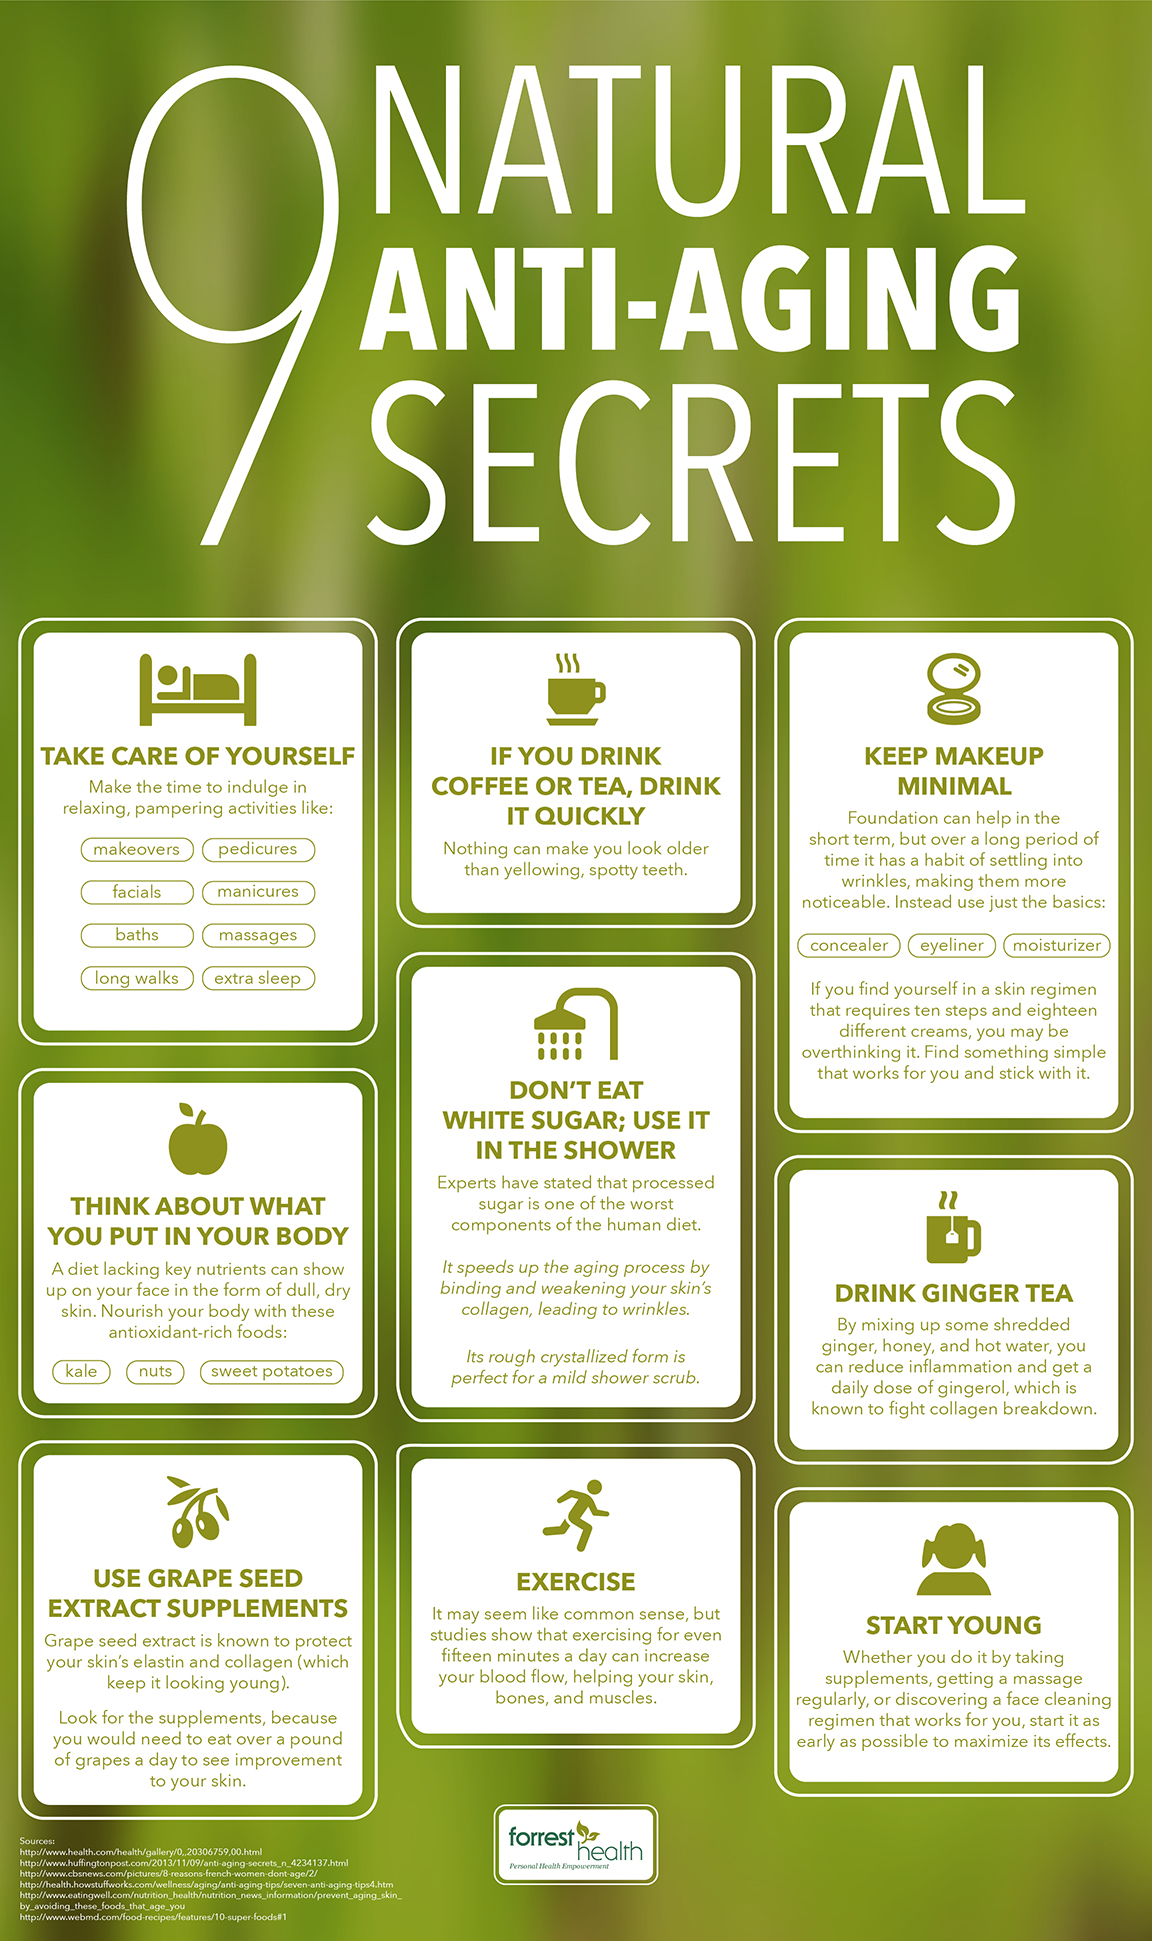 9 Natural Anti-Aging Secrets Infographic